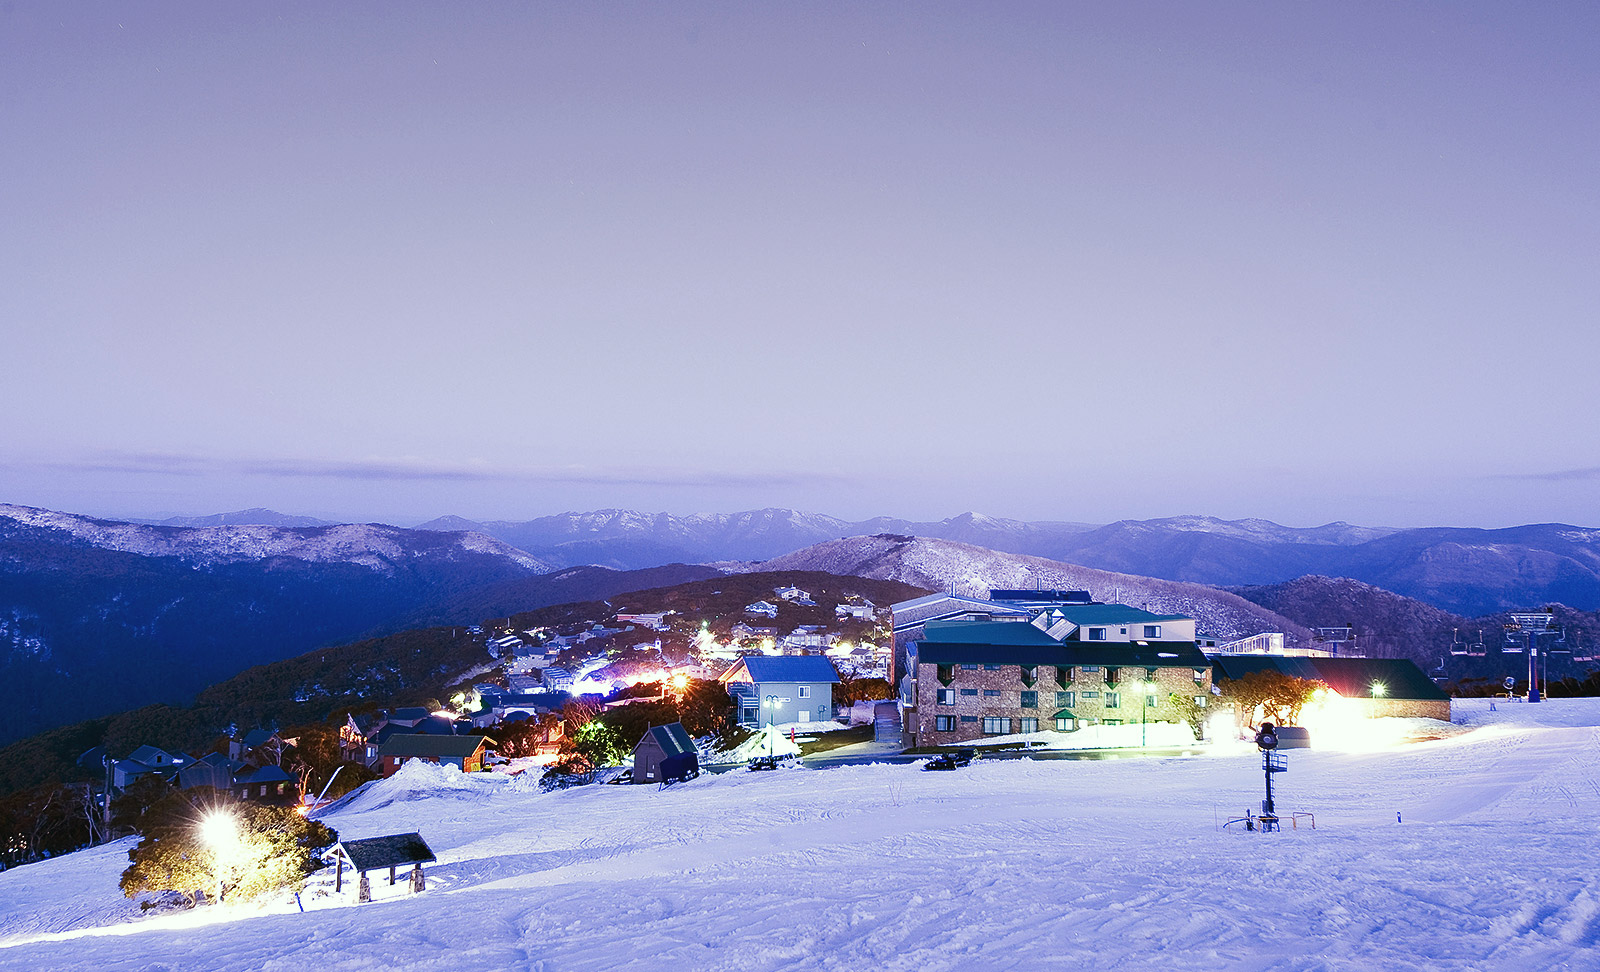 Arlberg Hotel Mt Buller Logo and Images